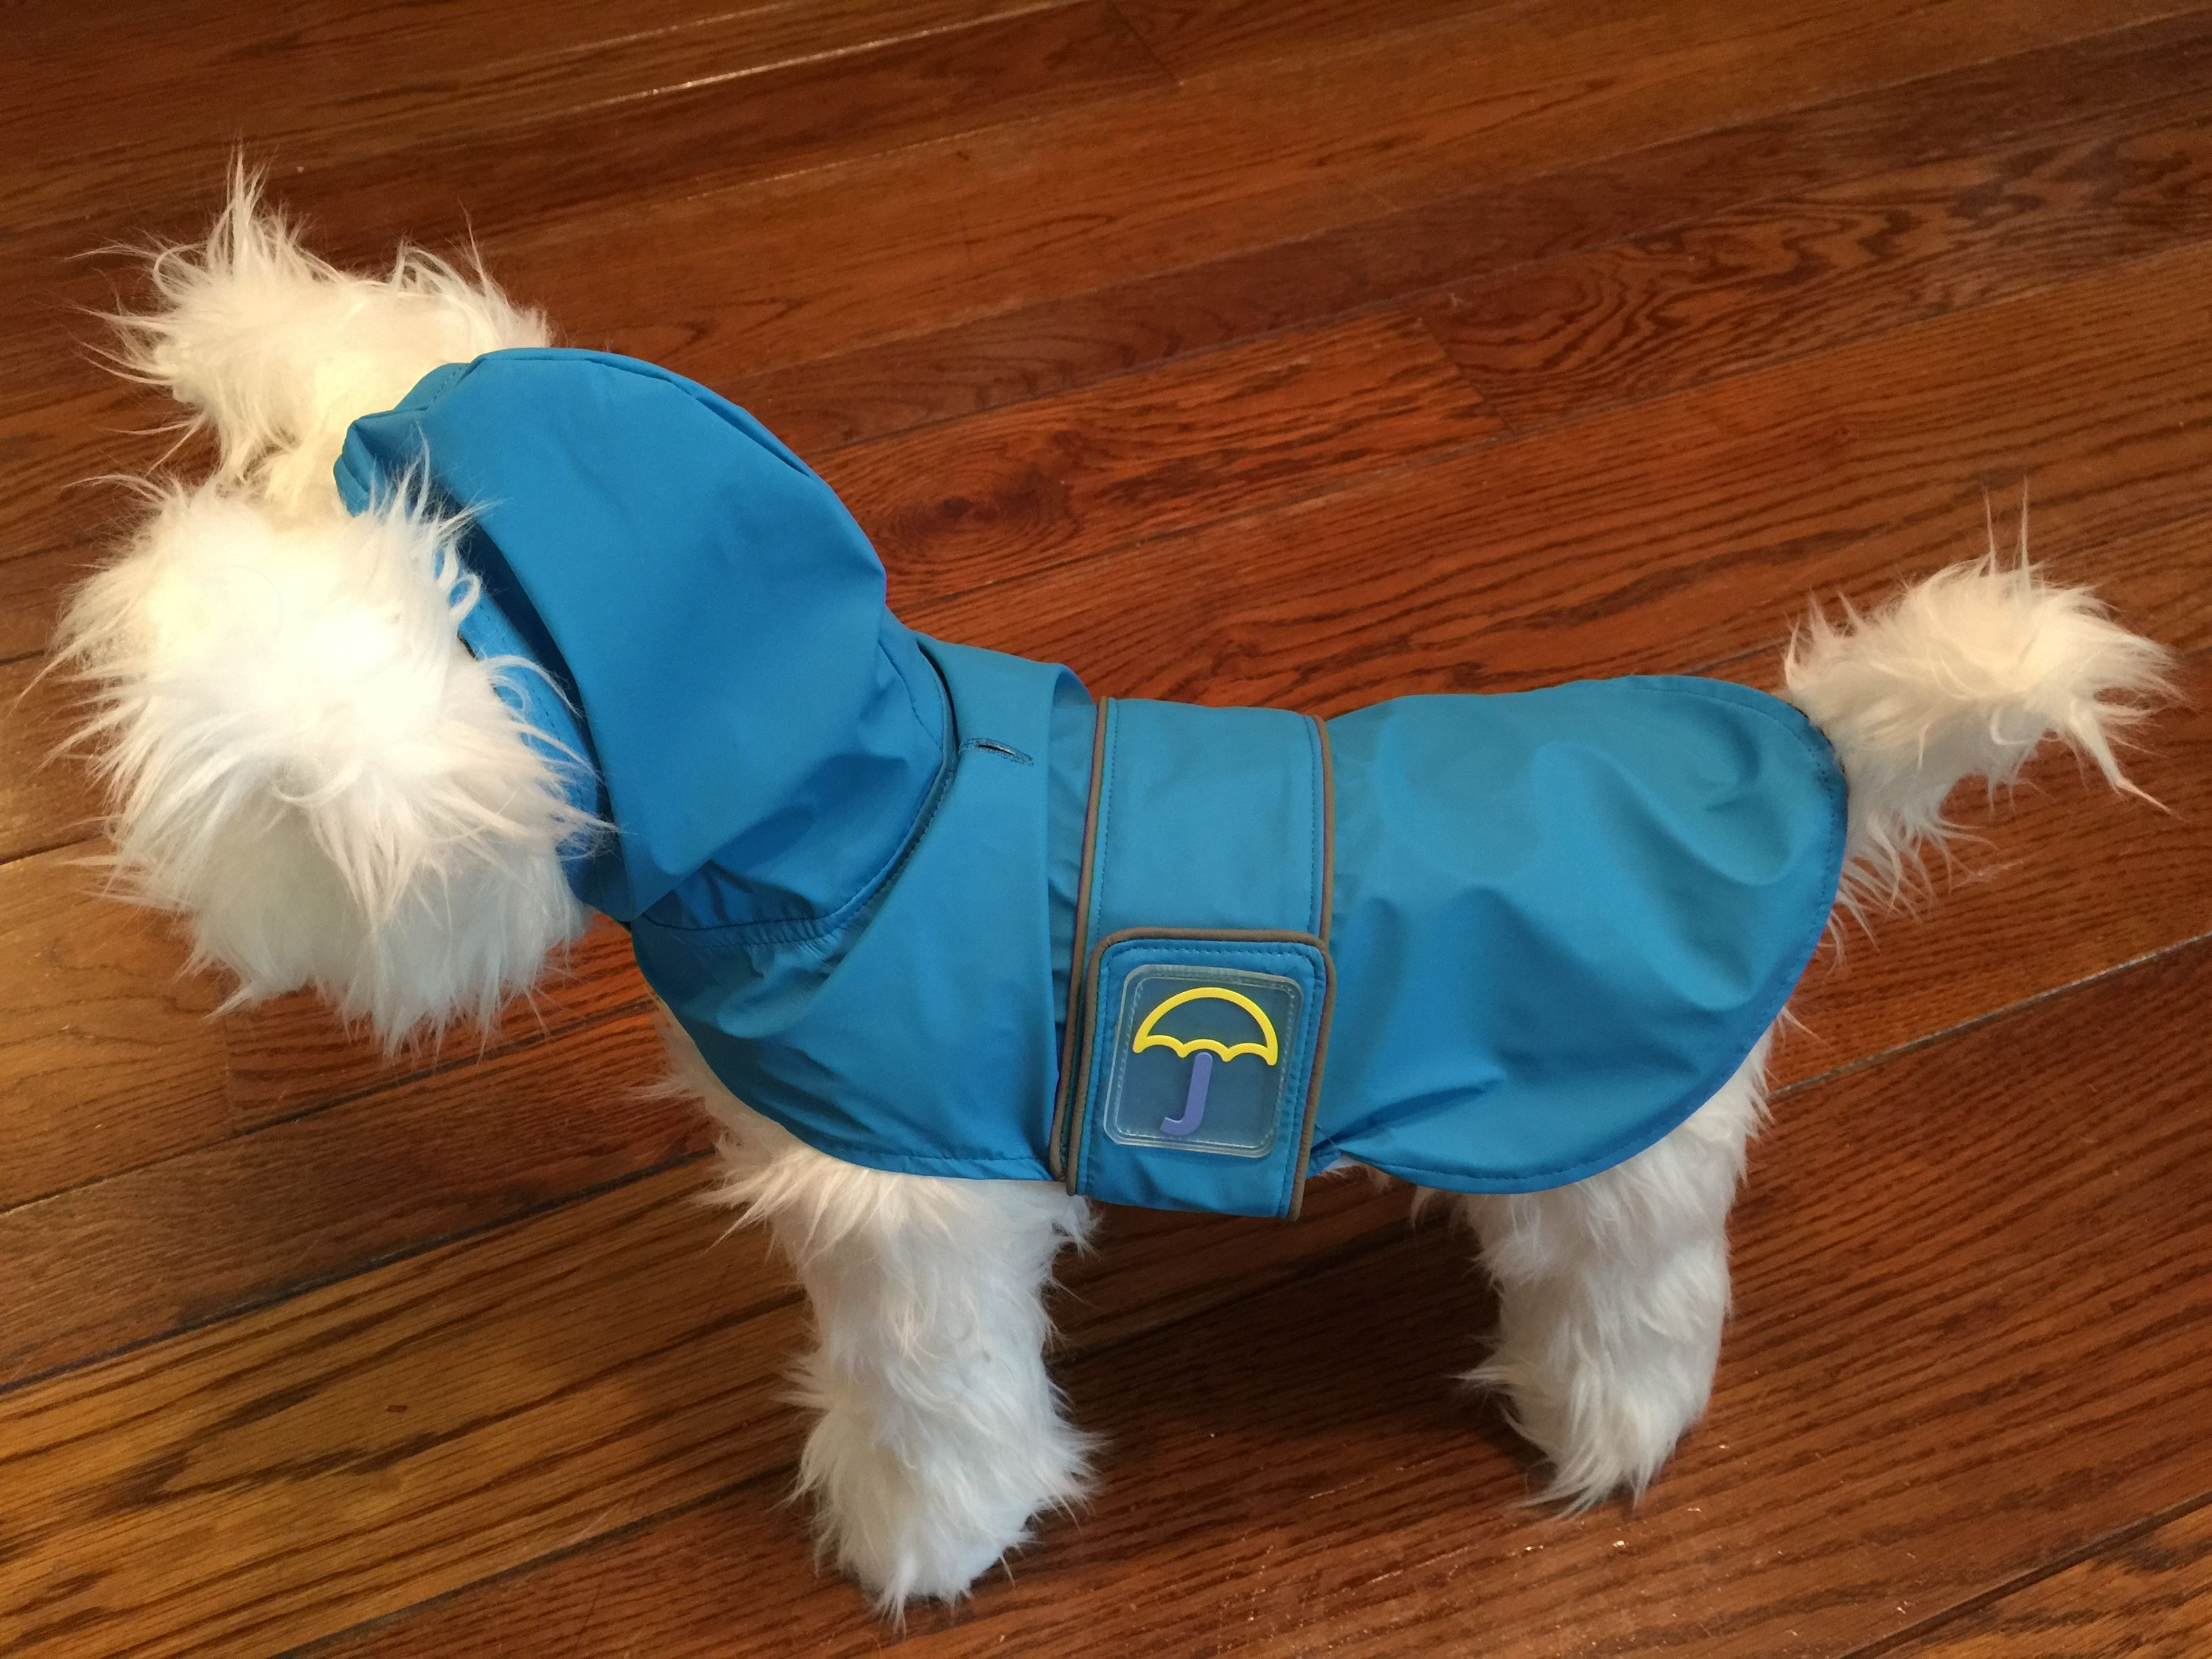 bd907e5b54c1 Klippo Splashing Whale Dog Raincoat | Small Dog Coats | Dog raincoat ...